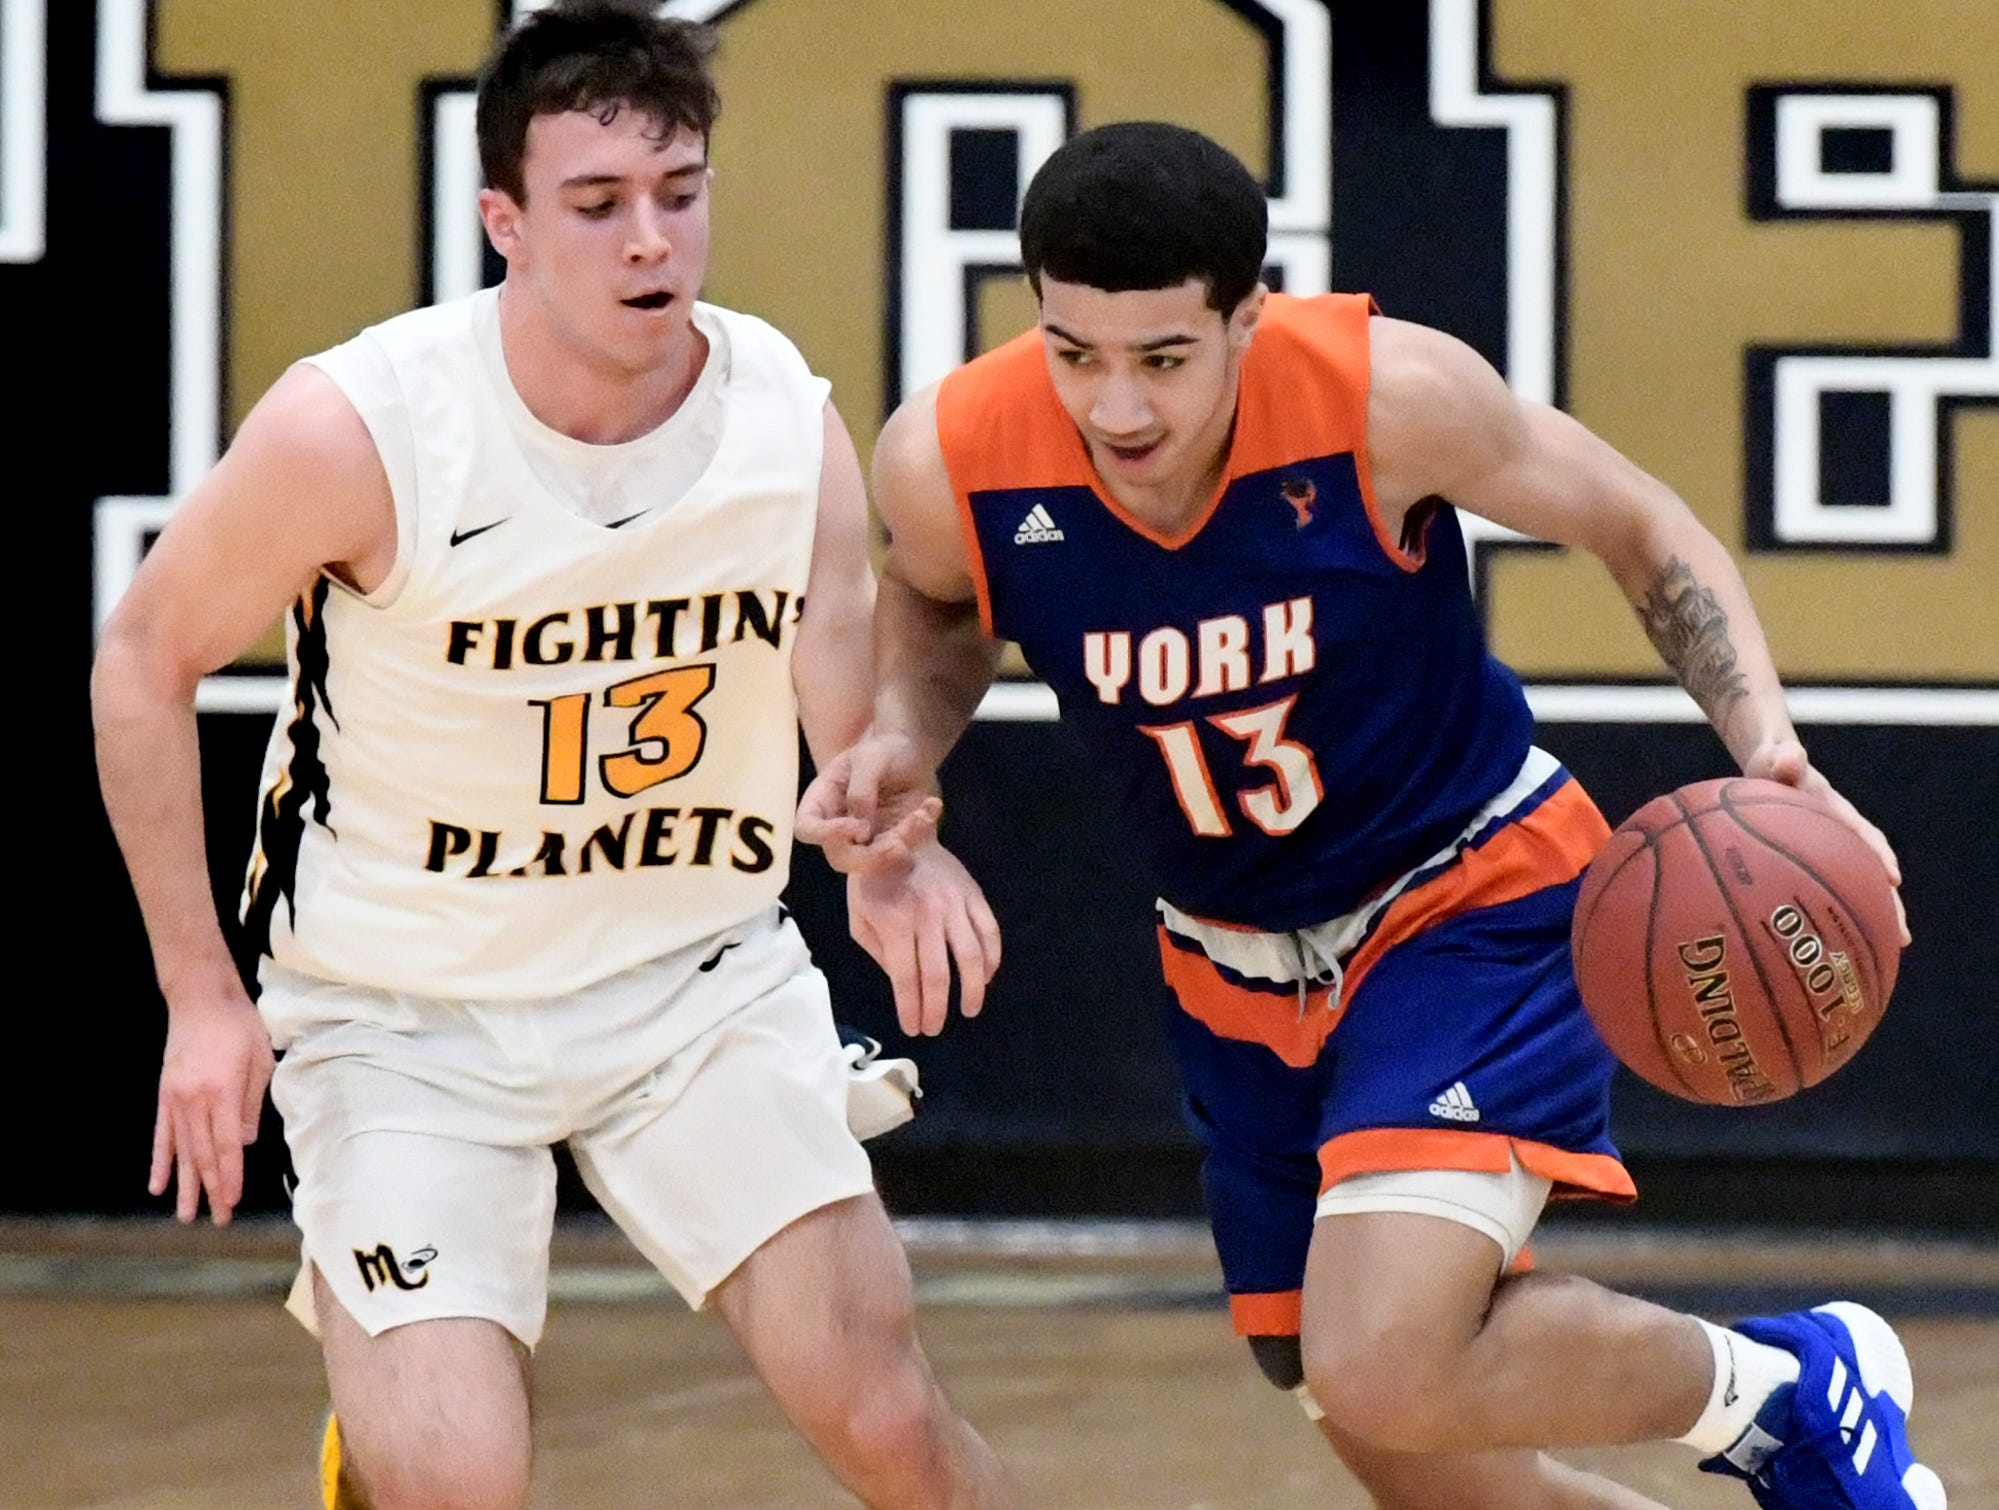 York High's Dayvon Cortez drives after stealing from Mars' Andrew Recchia during a PIAA Class 5-A second-round state boys' basketball playoff game at Holidaysburg High School in Blair County Tuesday, March 12, 2019. York lost the game 60-59. Bill Kalina photo